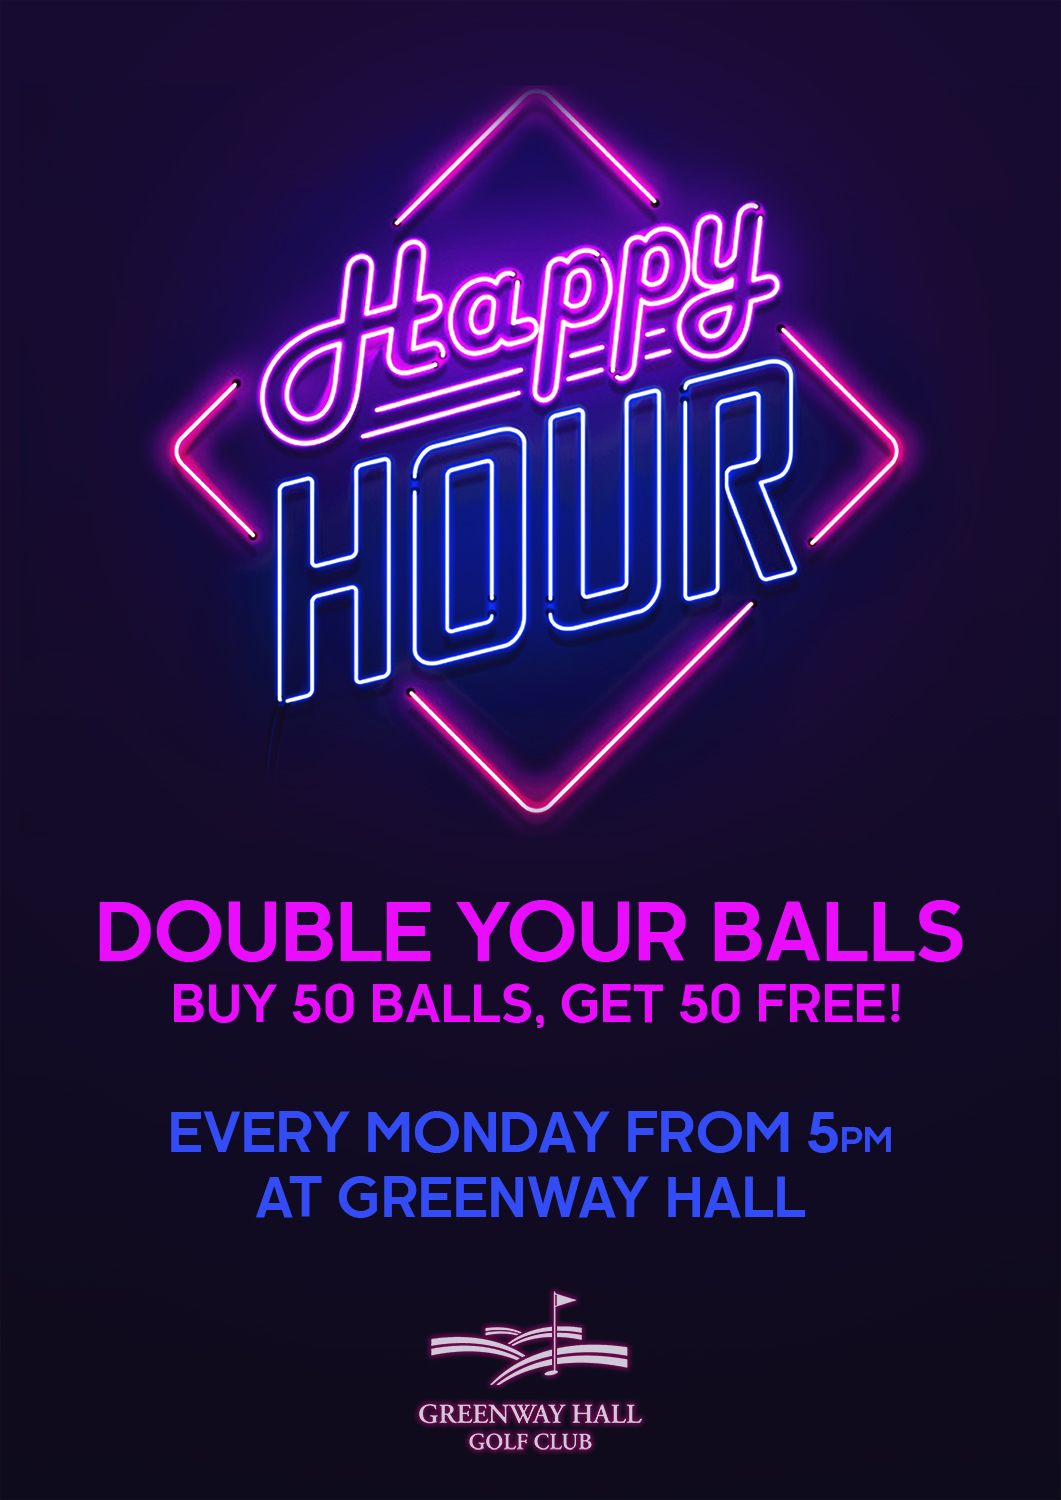 Happy Hour Every Monday at Greenway Hall